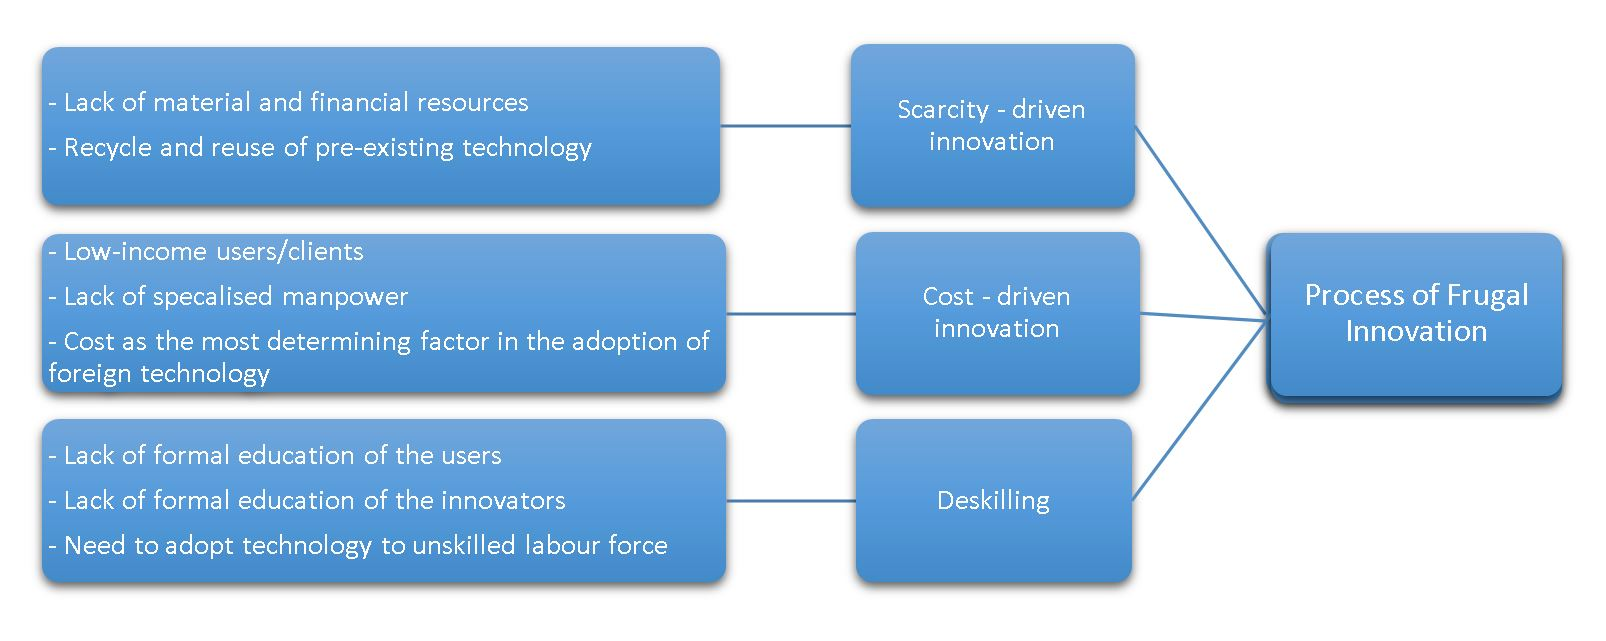 Frugal Innovation Process